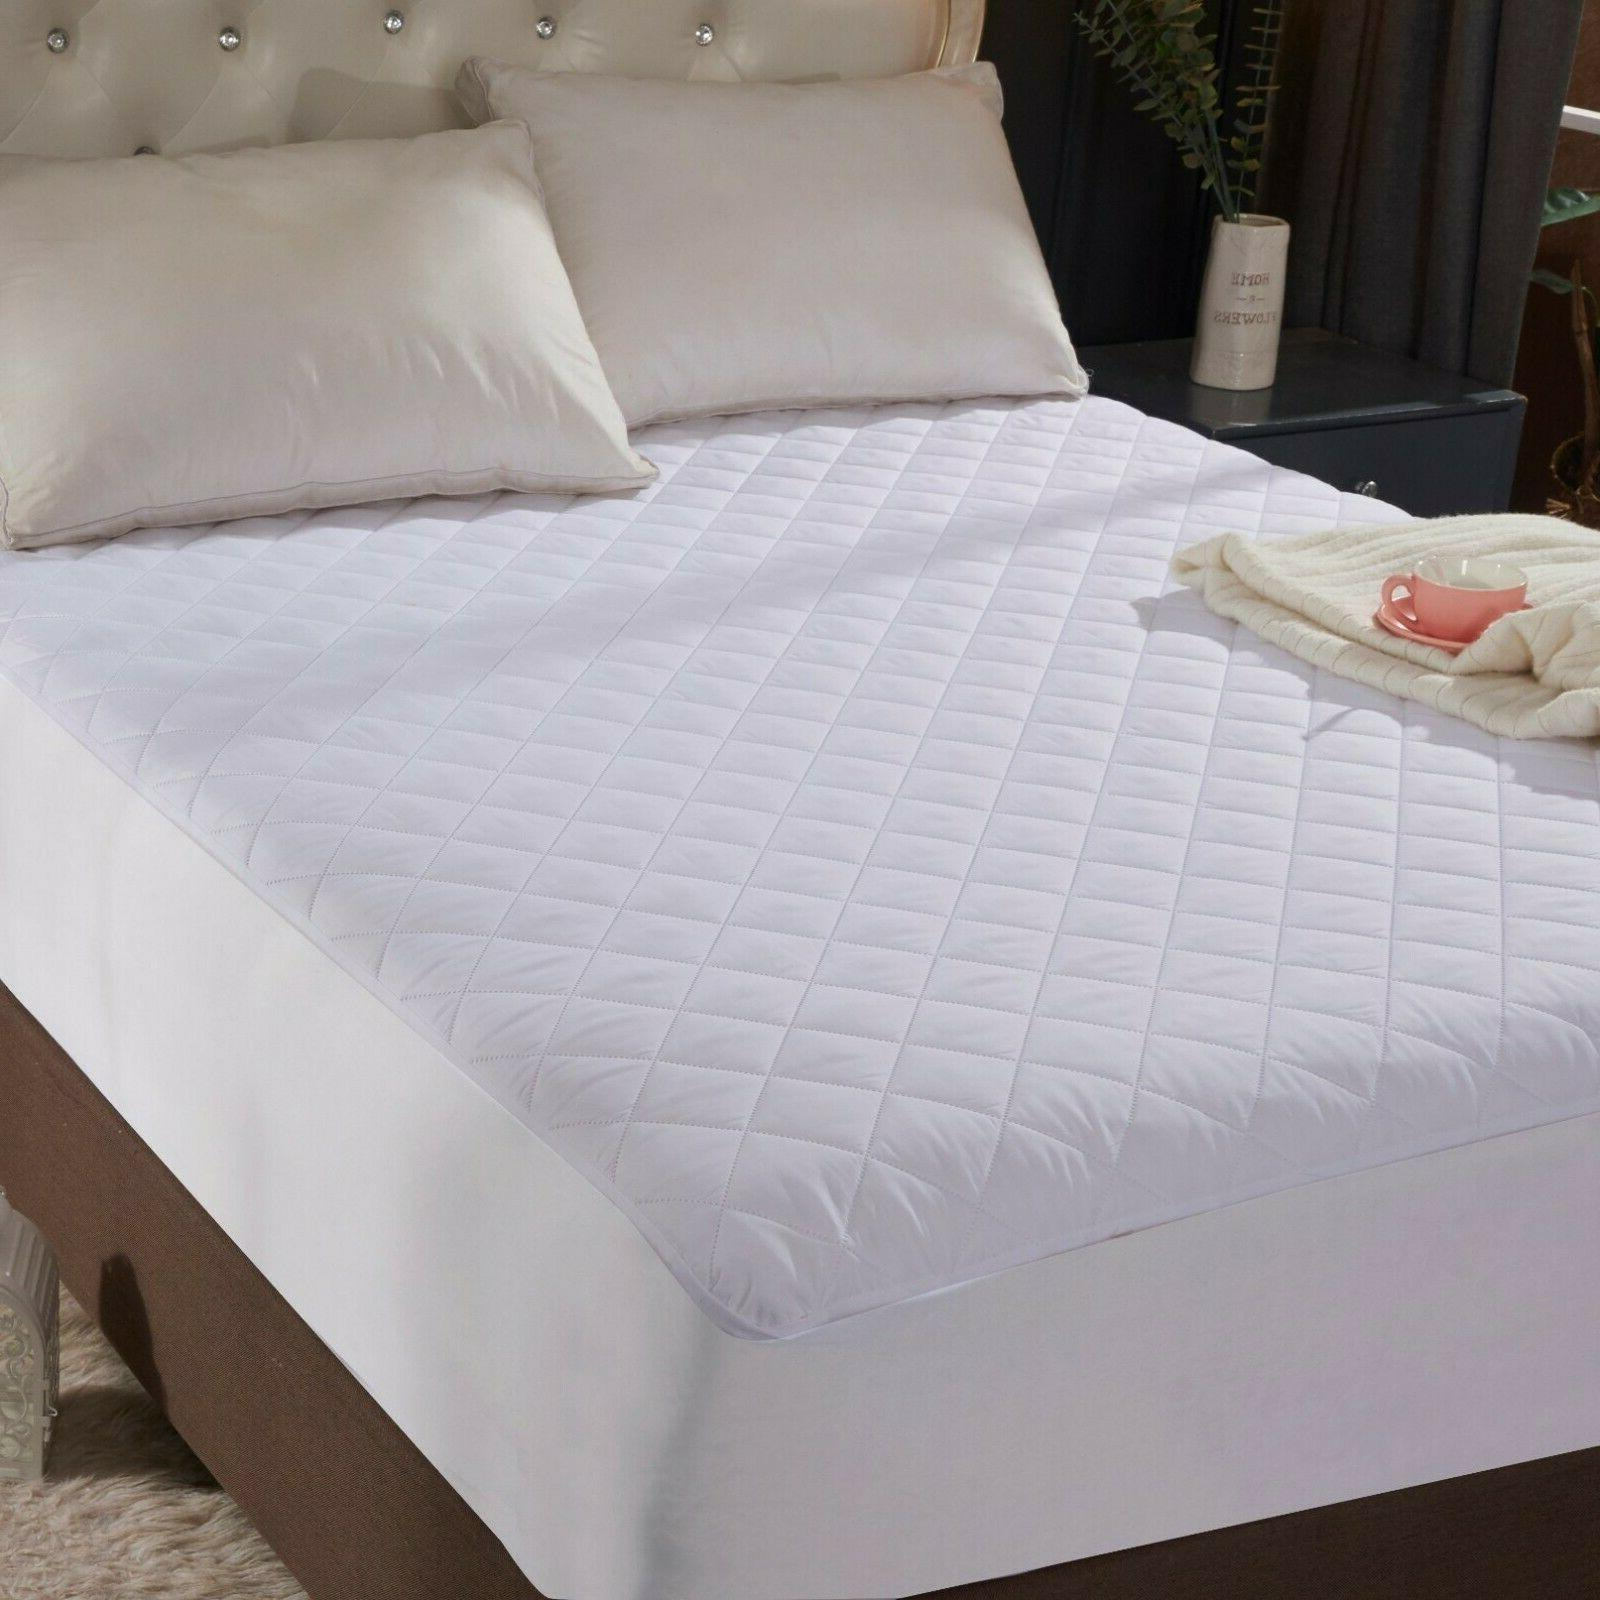 queen size quilted mattress protector pad topper